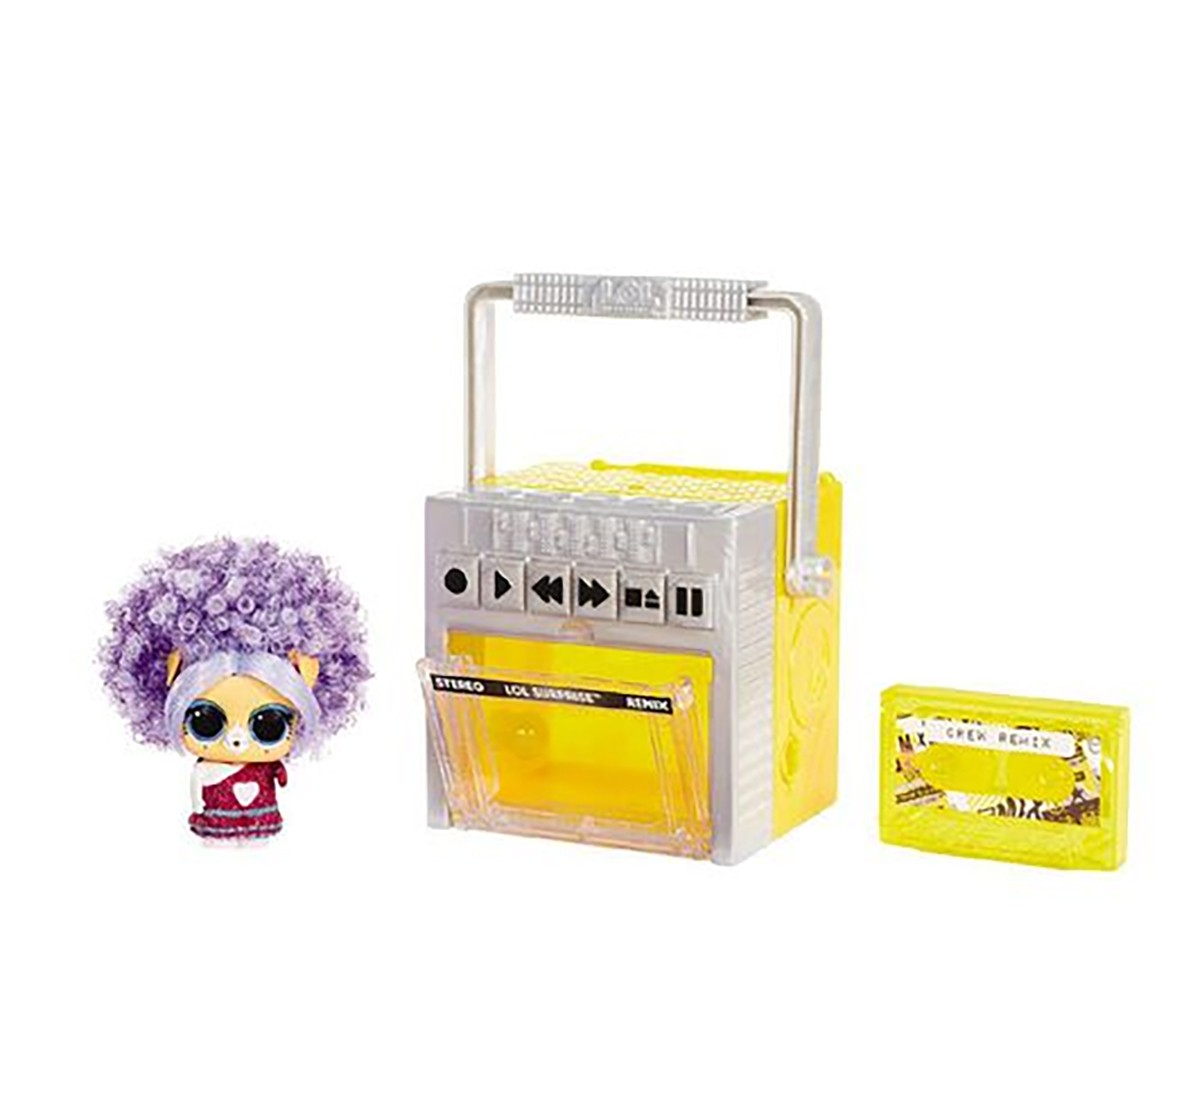 LOL Remix Pets Doll, Collectible Dolls for girls age 3Y+ (Assorted)